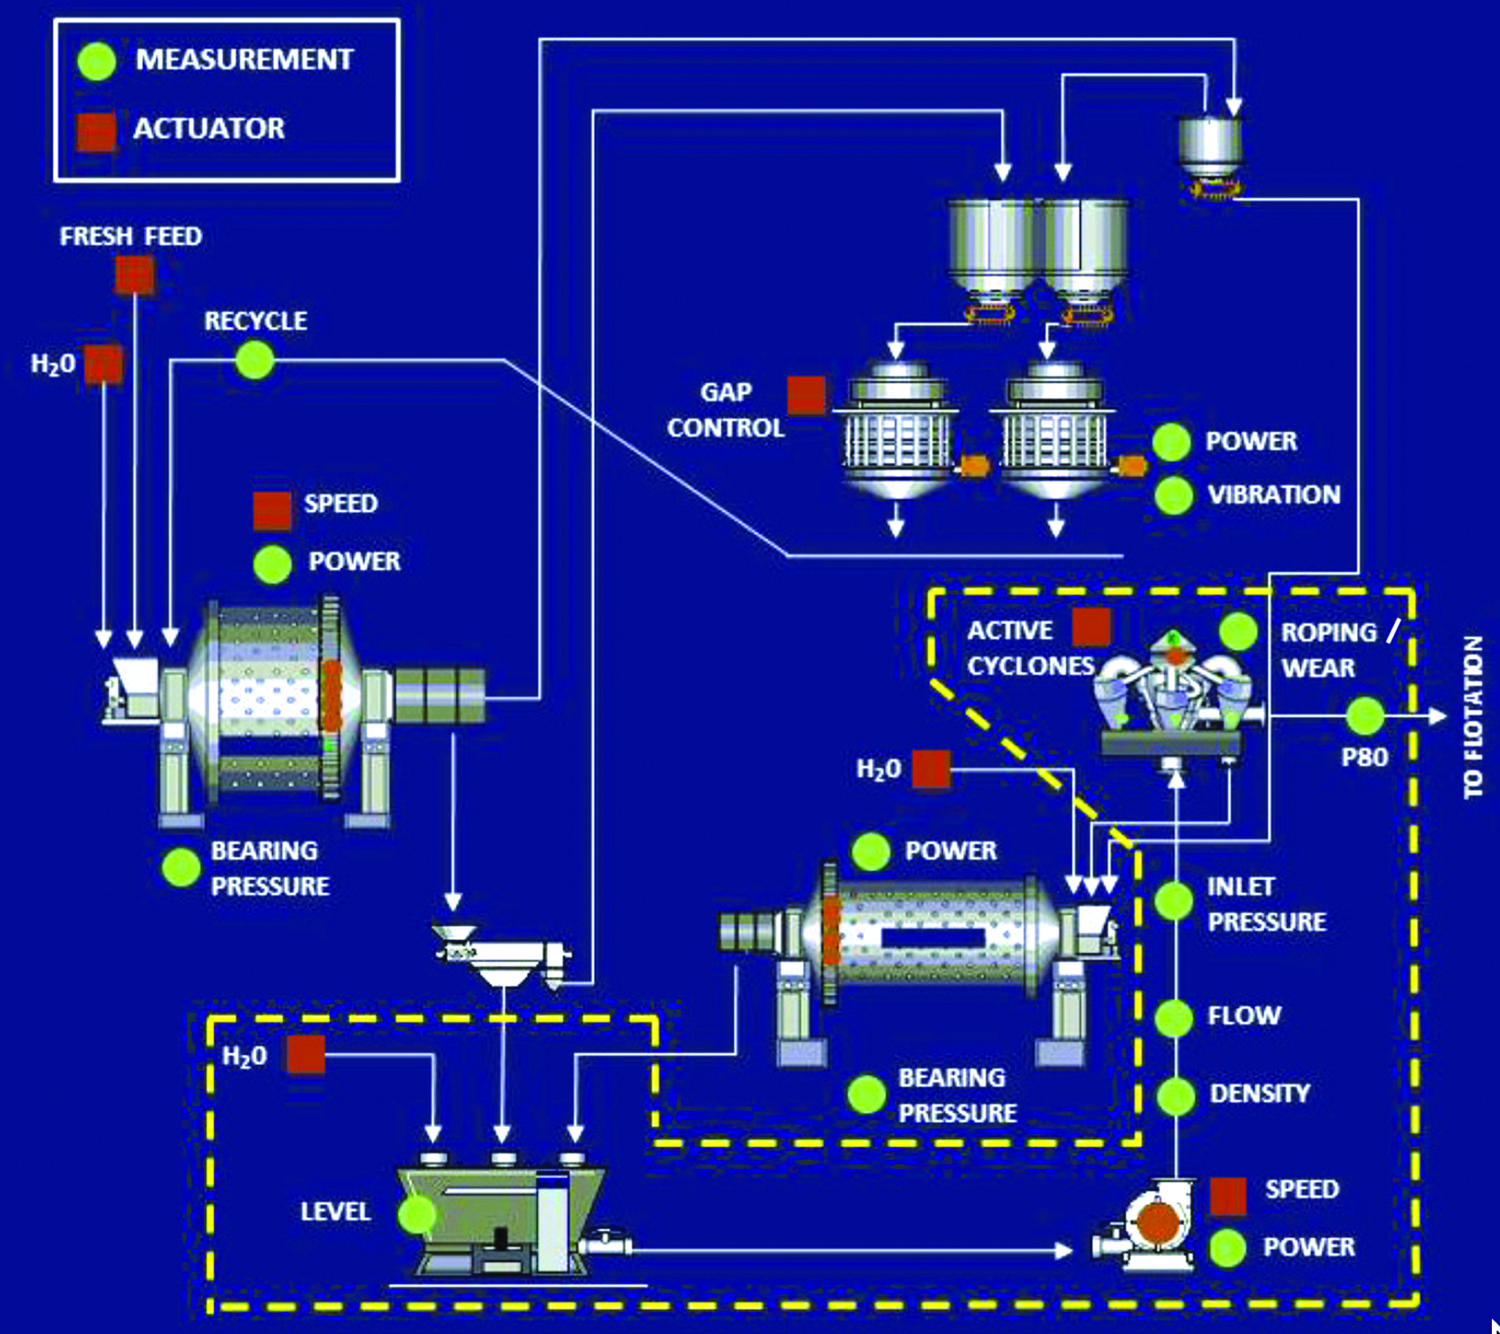 FLSmidth says its SmartCyclone system introduces electronic sensing and communications to Krebs' hydrocyclone product line and the encompassing process, creating an 'island of optimization' for the mineral processing market.